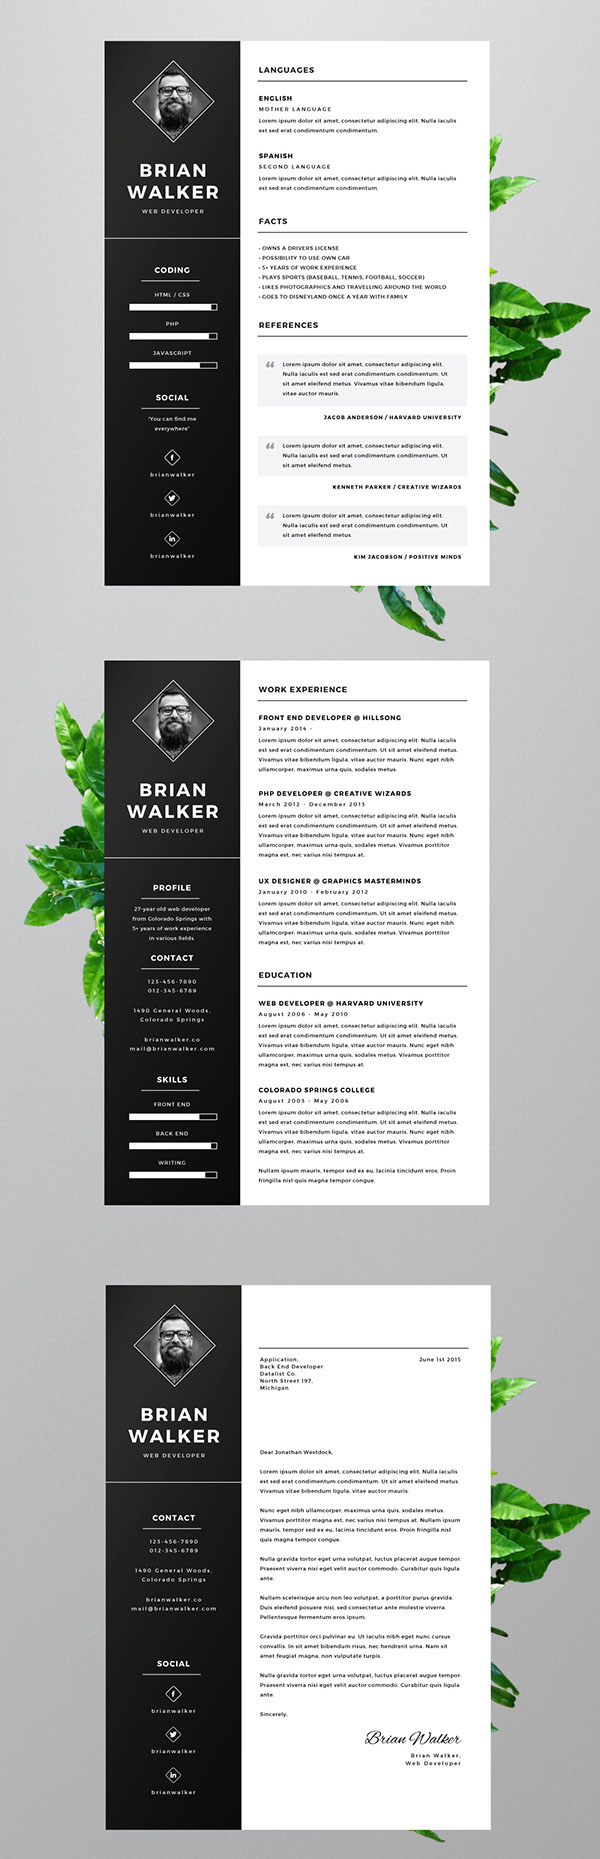 free resume template for word  photoshop  u0026 illustrator on pantone canvas gallery